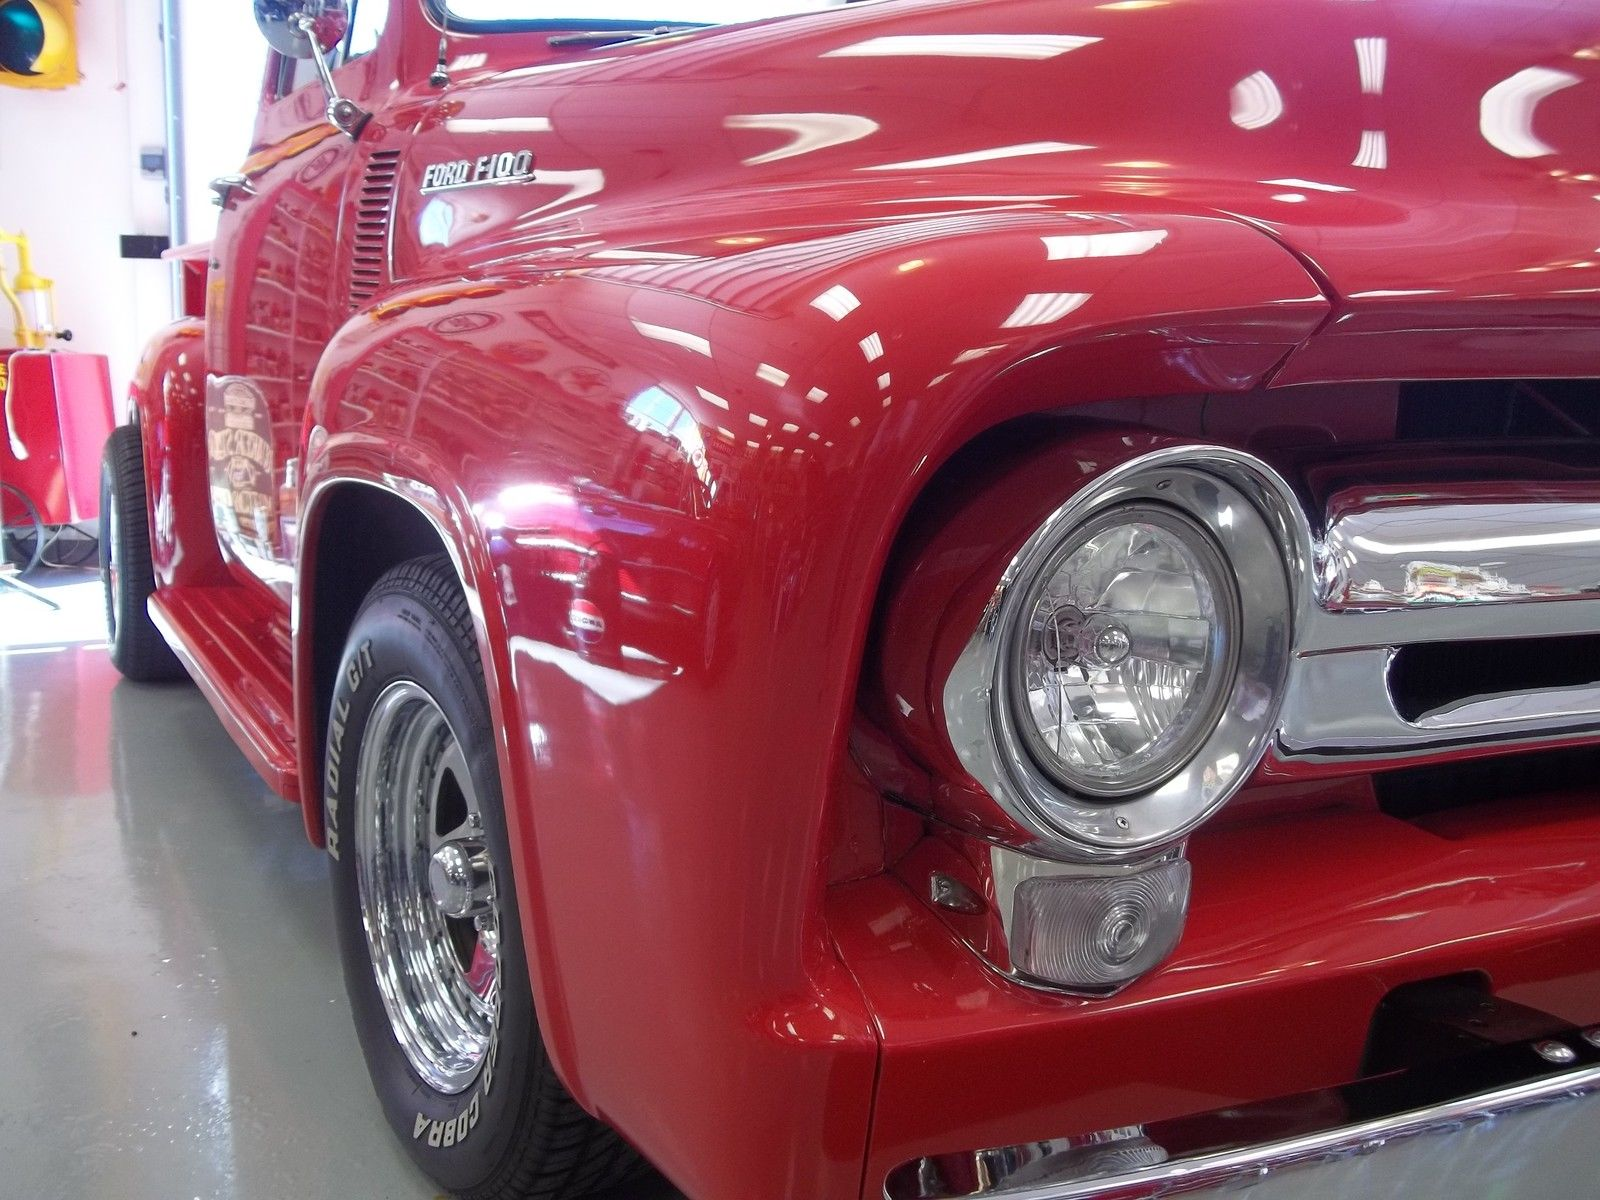 dodge aspen bolt pattern with 37098 1955 Ford Pickup Beautiful F100 F 100 Custom Truck Restored 130 Pics 5 Videos on 221991767310 moreover Chrysler Aspen black wheels 22 in addition A Body 8 3 4 Rear End Swap Into F Body also 222505951266 additionally 4 Pcs 2 Dodge Wheel Spacers Adapters 5x55 161748051303.